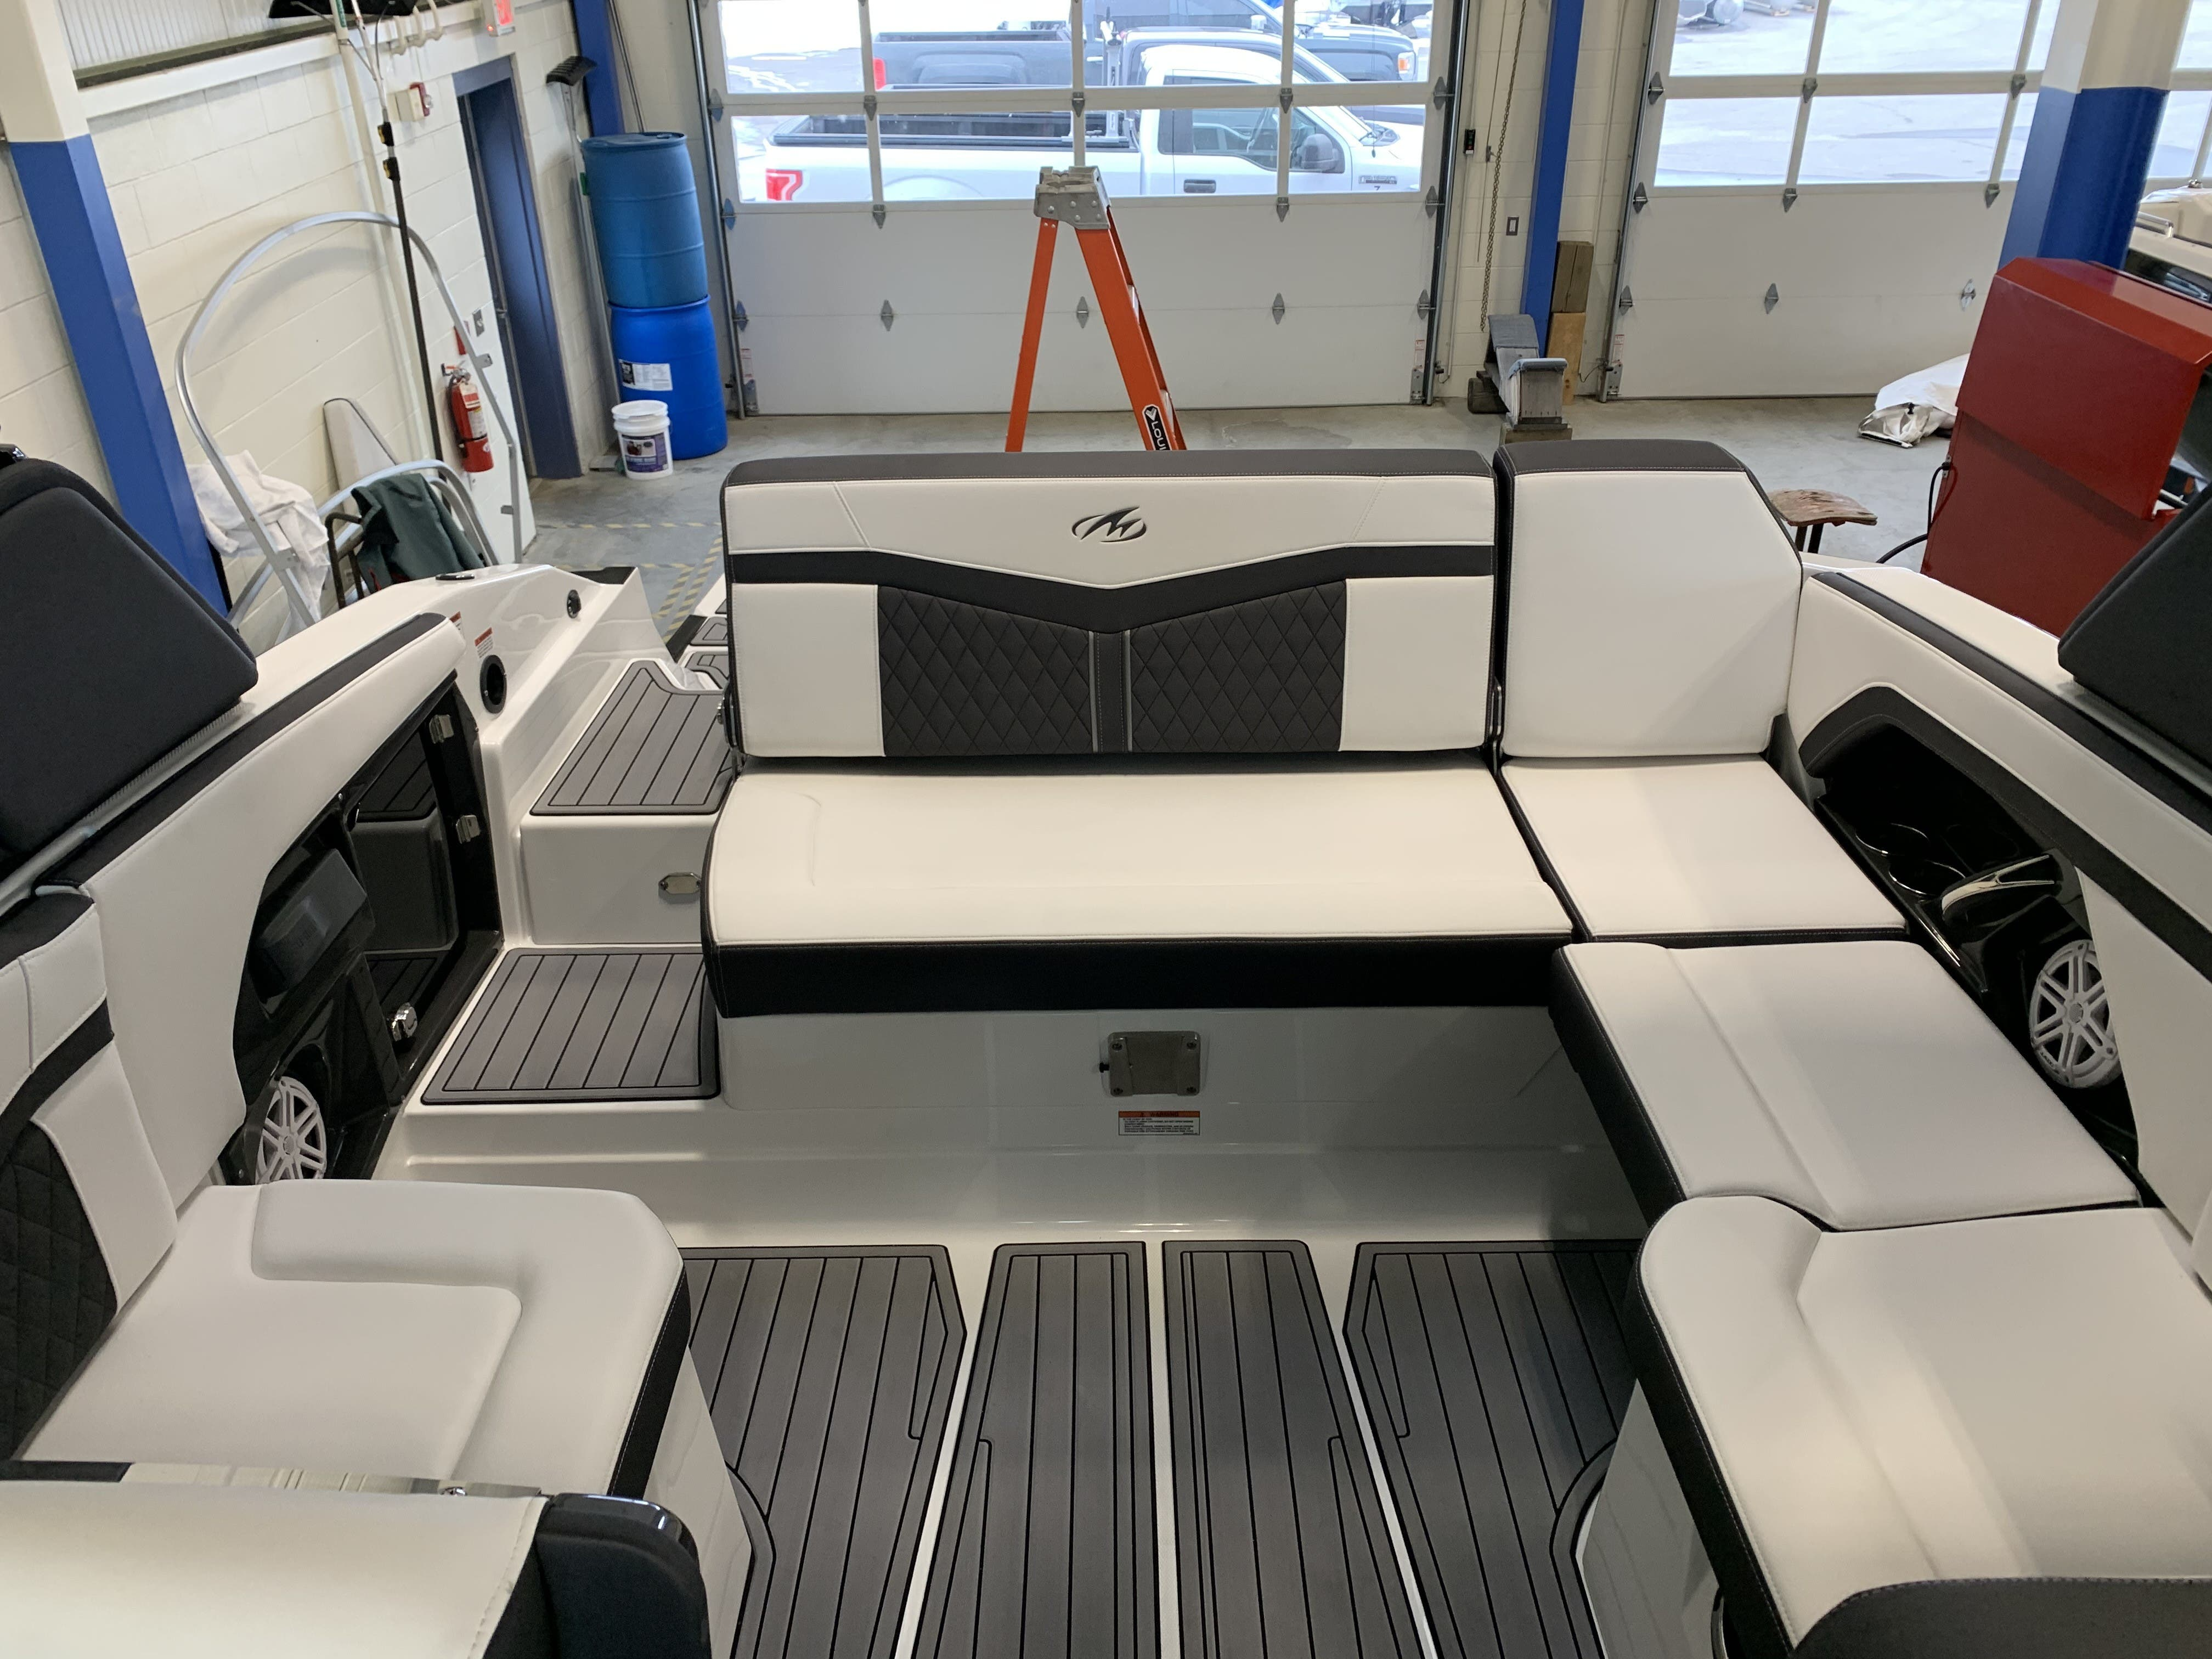 2022 Monterey boat for sale, model of the boat is 278ss & Image # 13 of 18